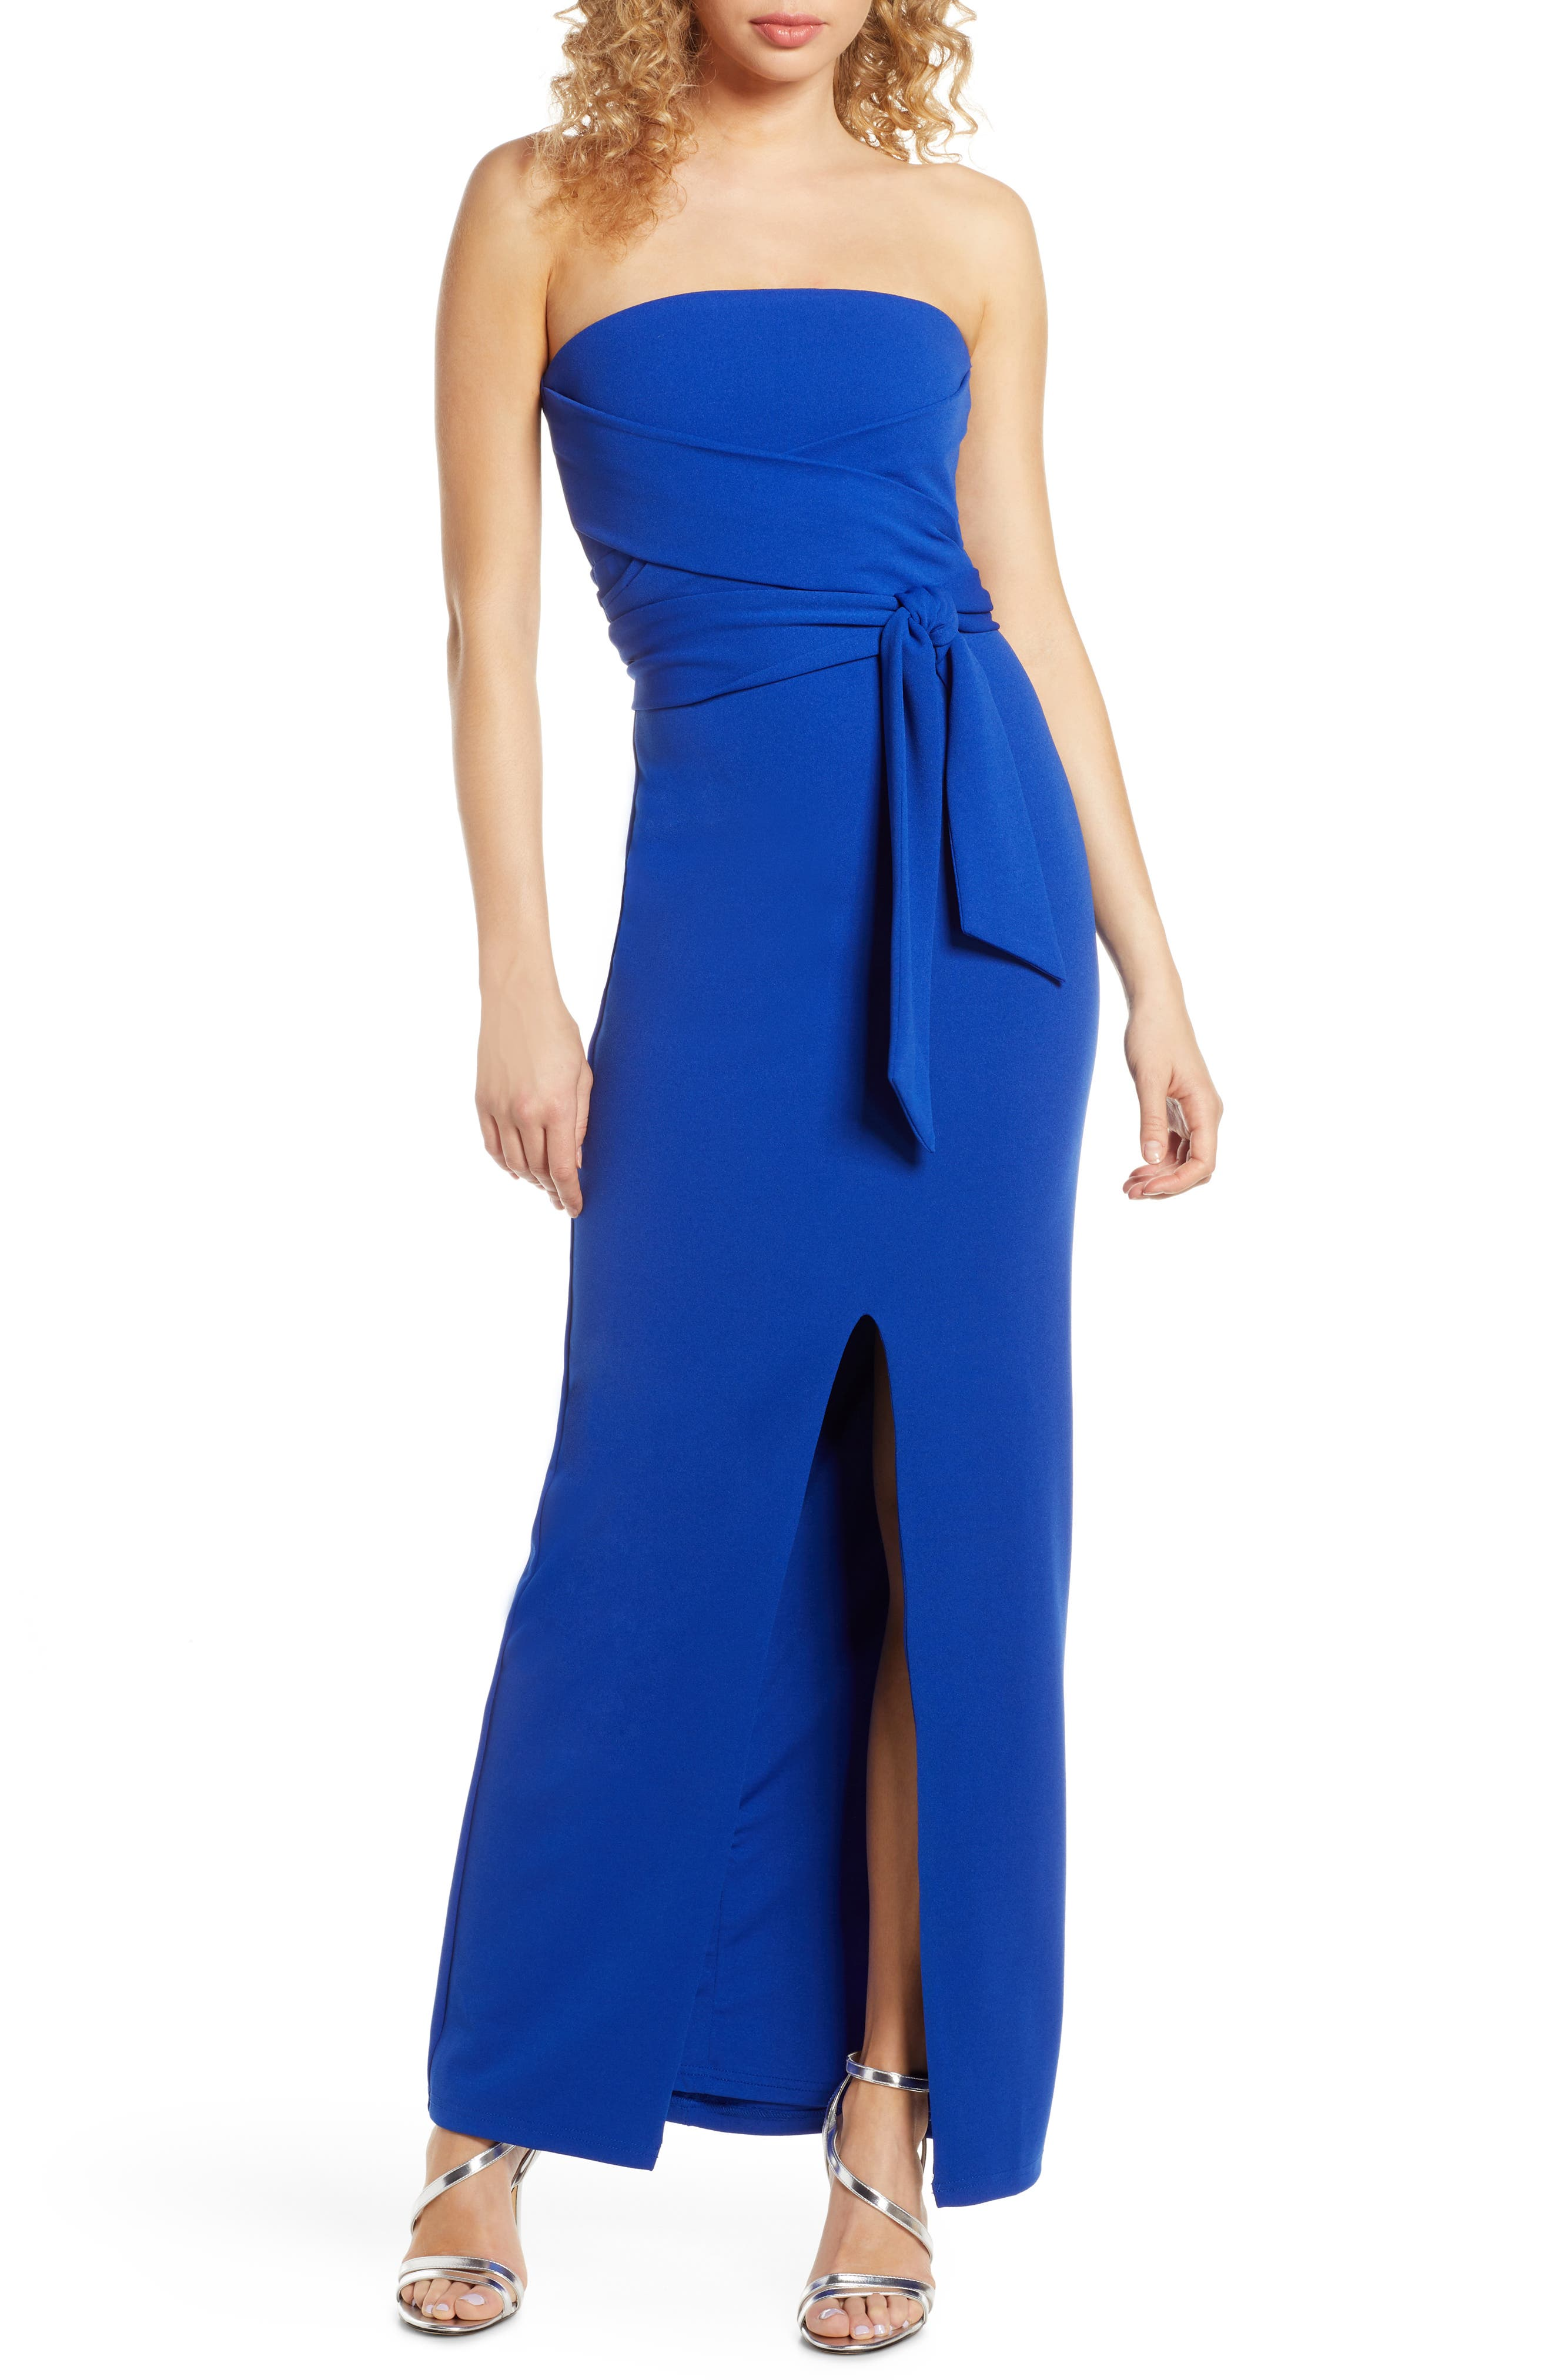 Lulus Own The Night Strapless Maxi Dress, Blue